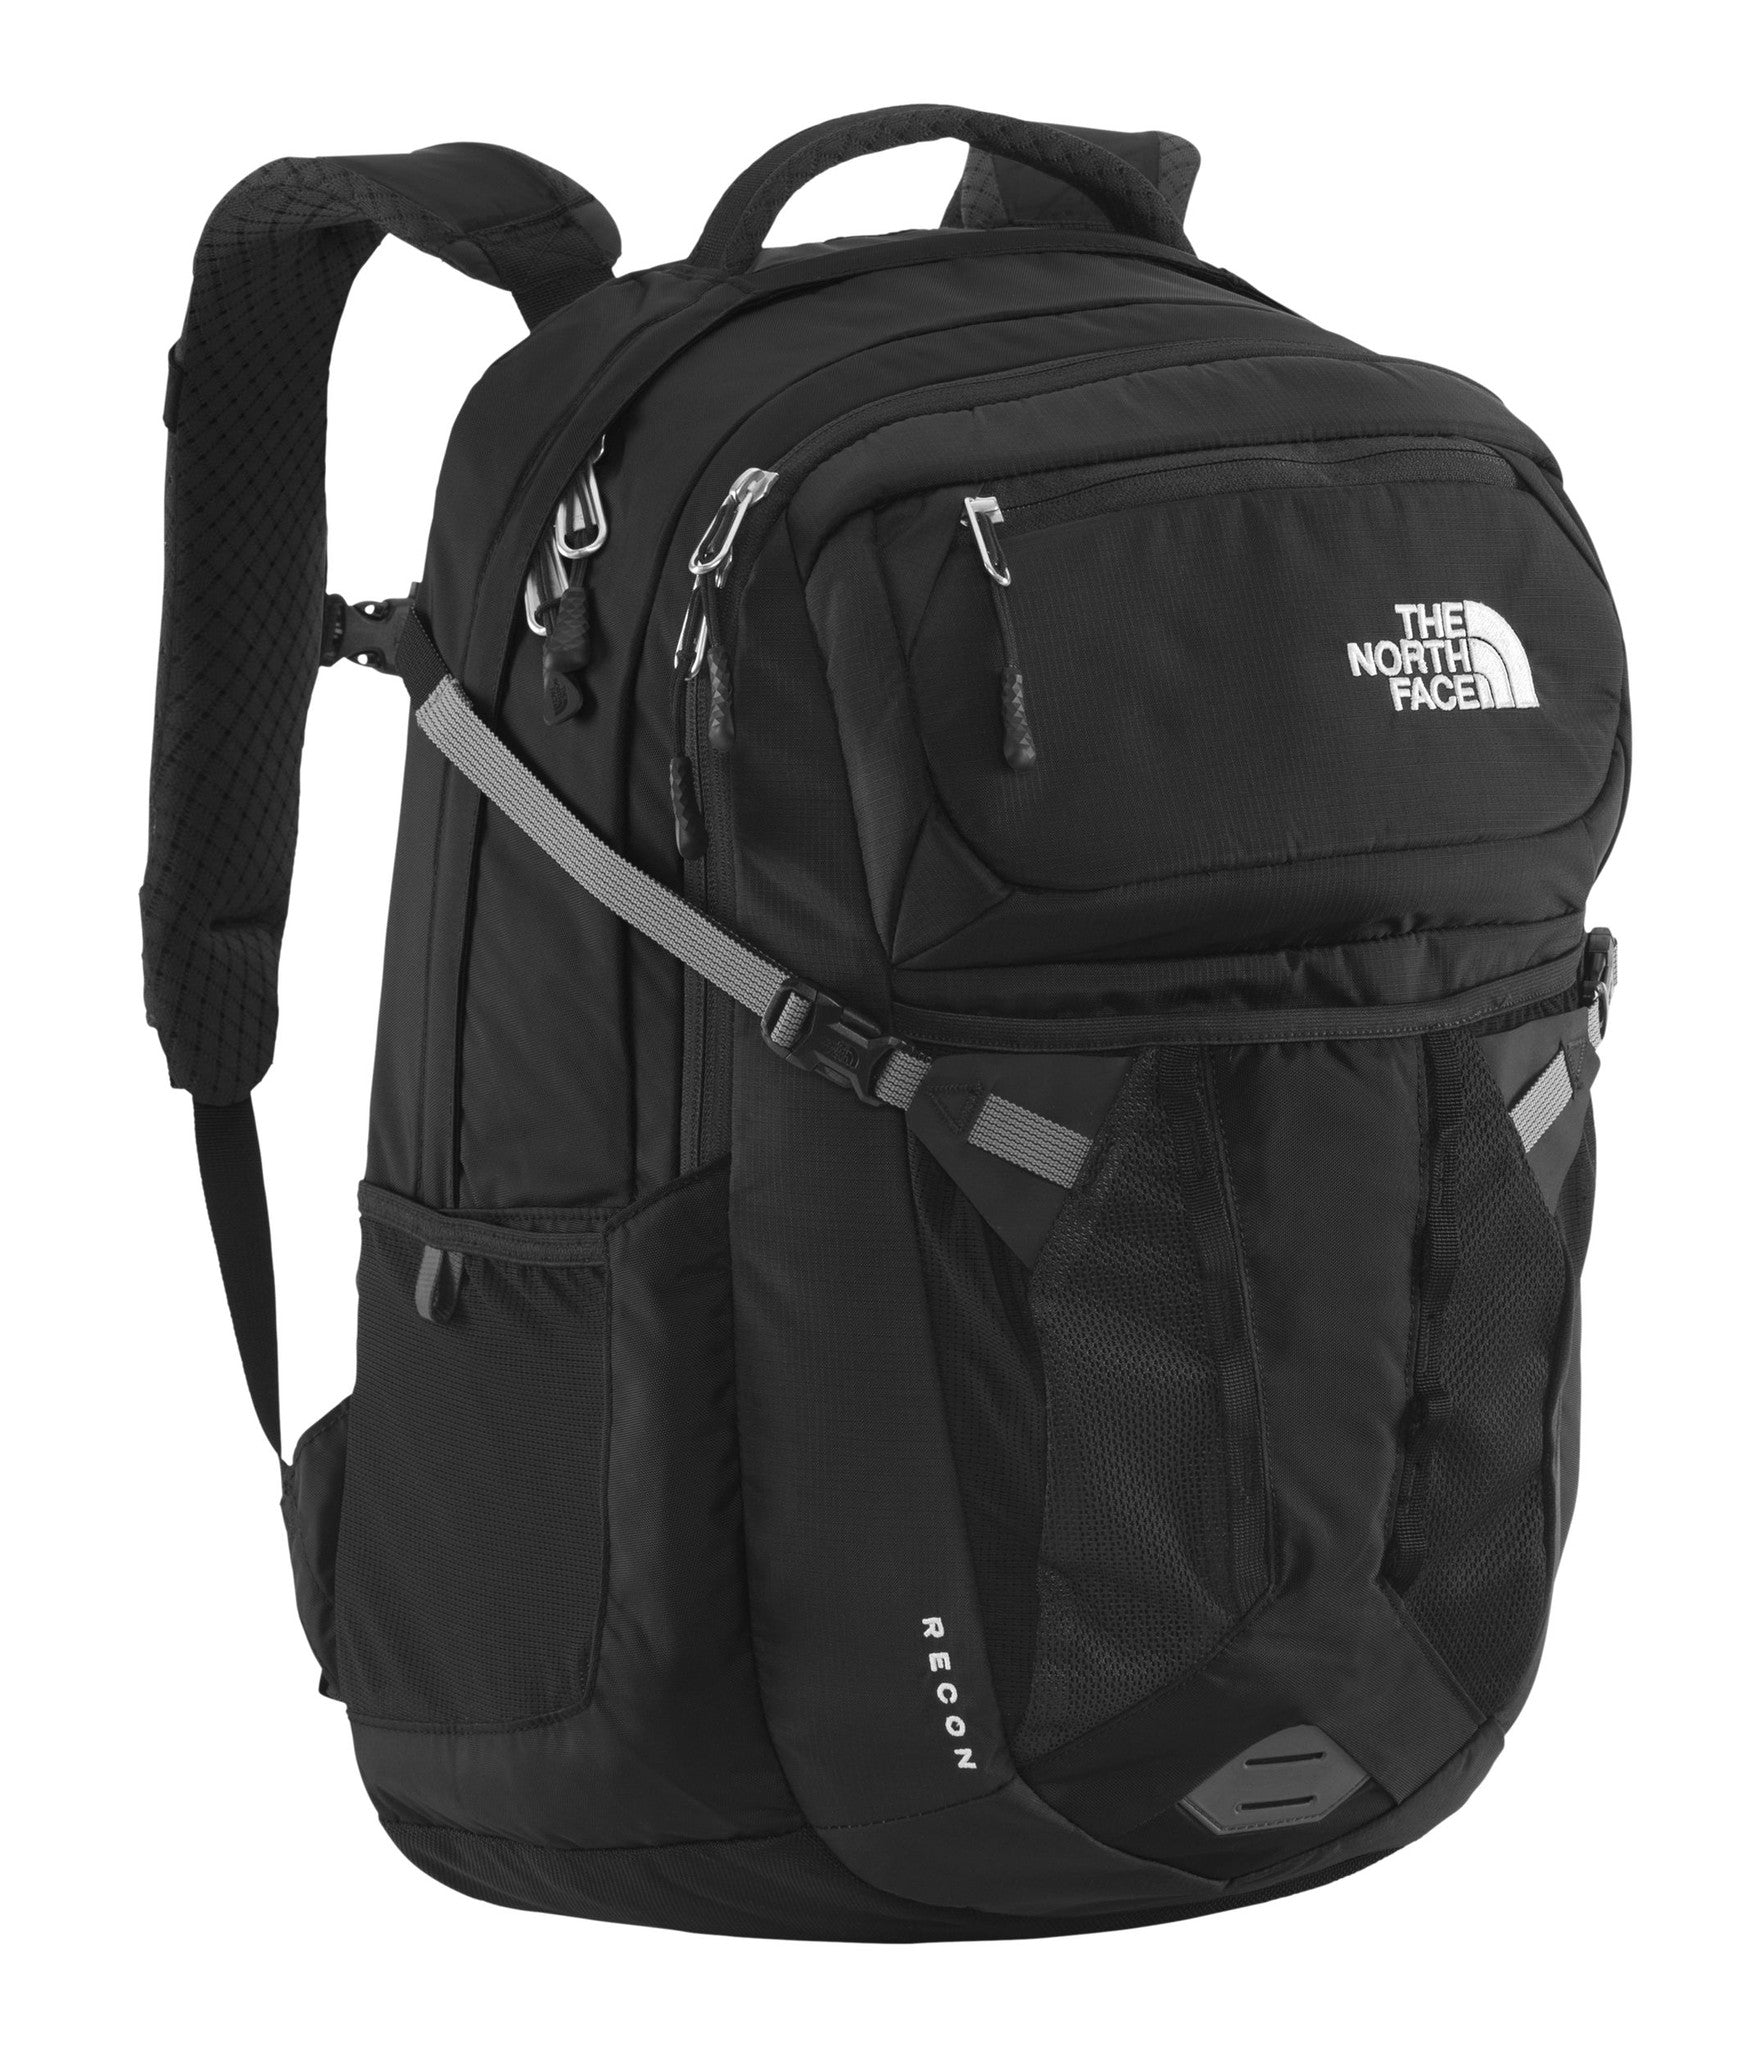 The North Face Women's Recon Backpack in TNF Black